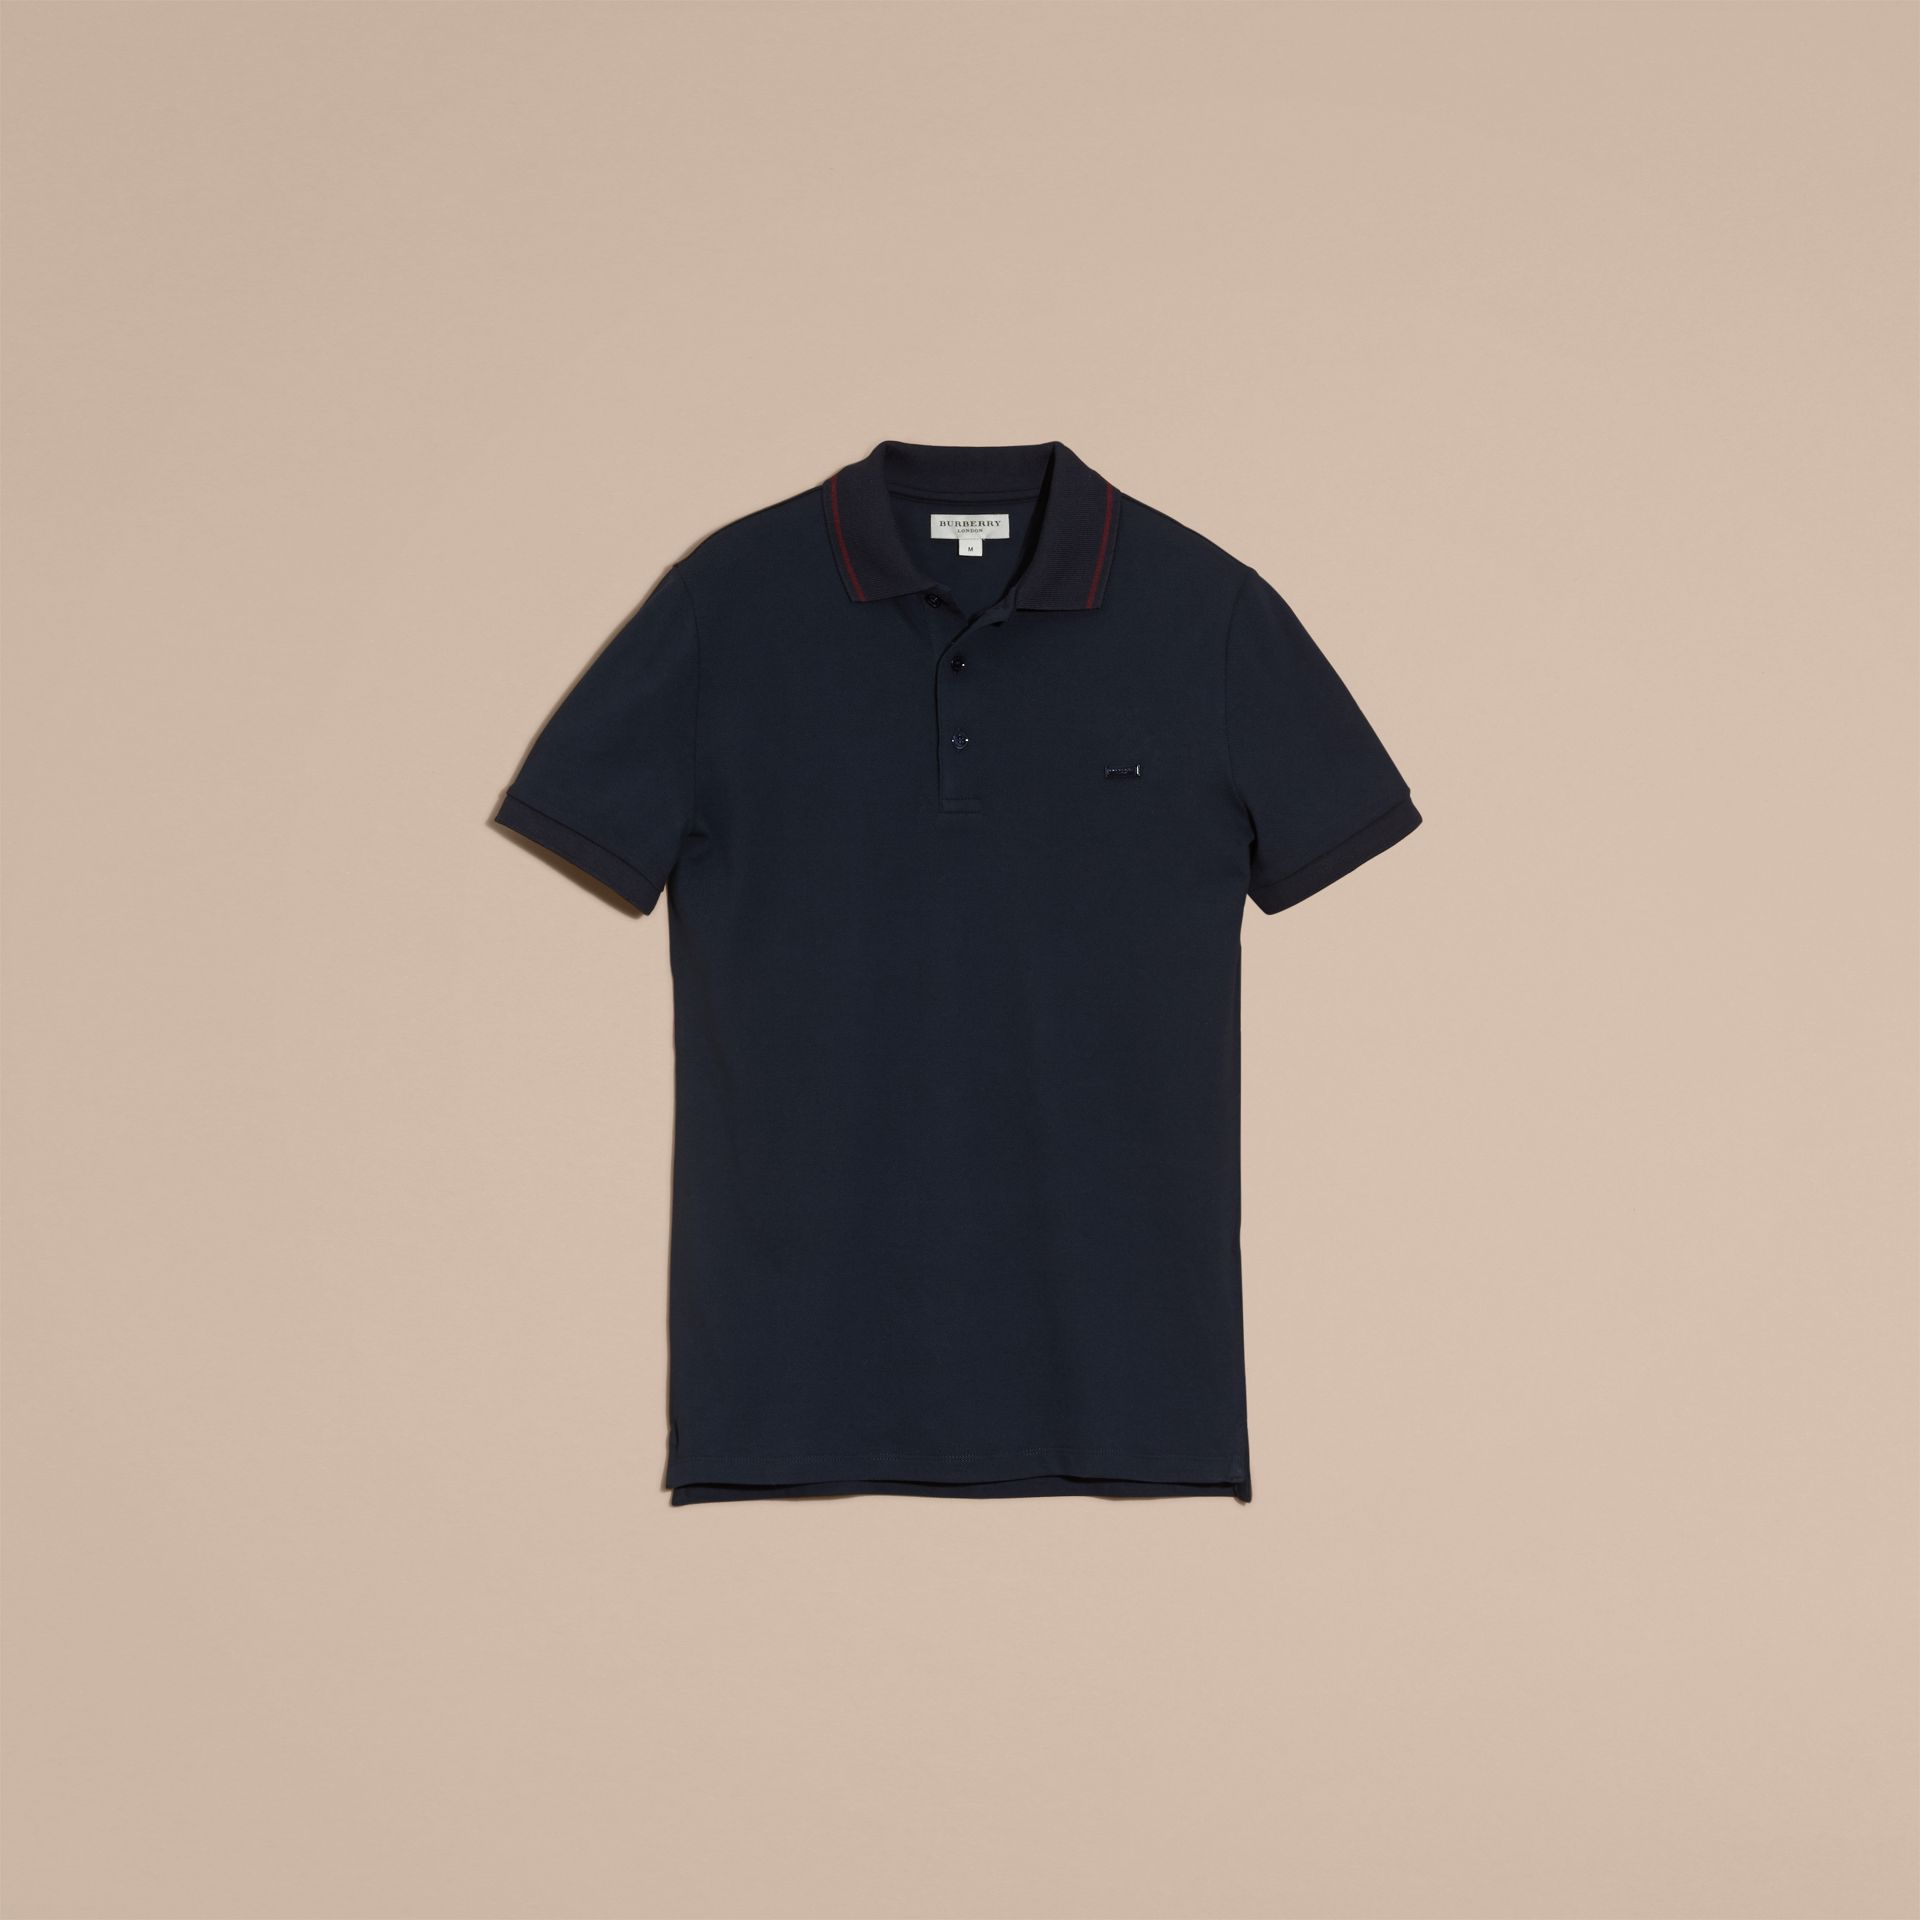 Navy/mahogany red Contrast Trim Cotton Piqué Polo Shirt Navy/mahogany Red - gallery image 4